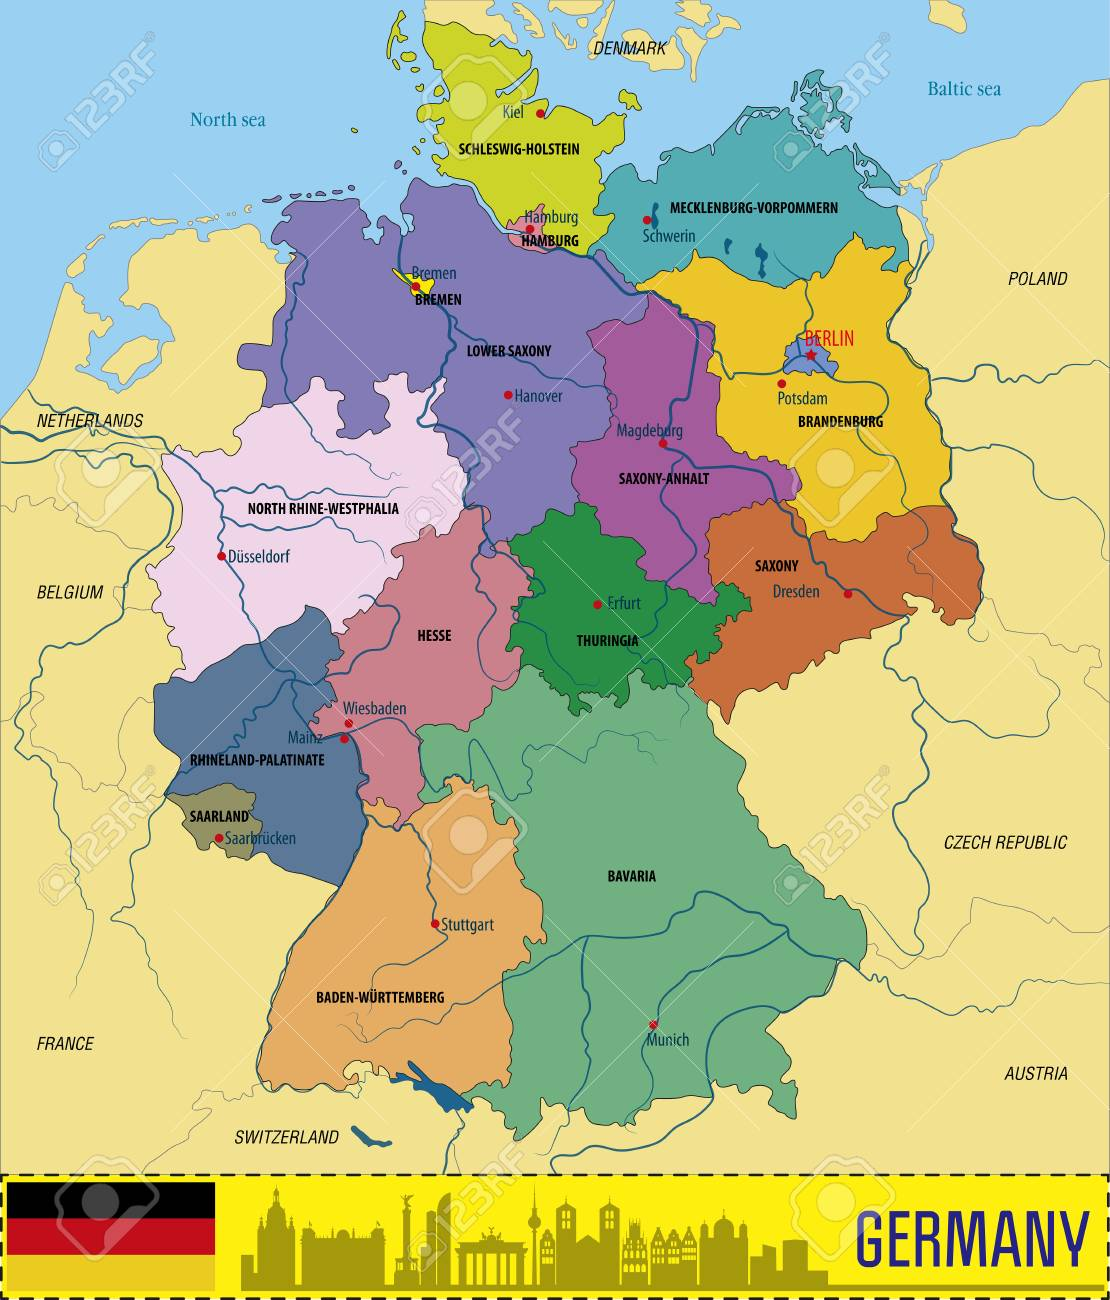 Regions Of Germany Map.Political Vector Map Of Germany With Regions And Their Capitals